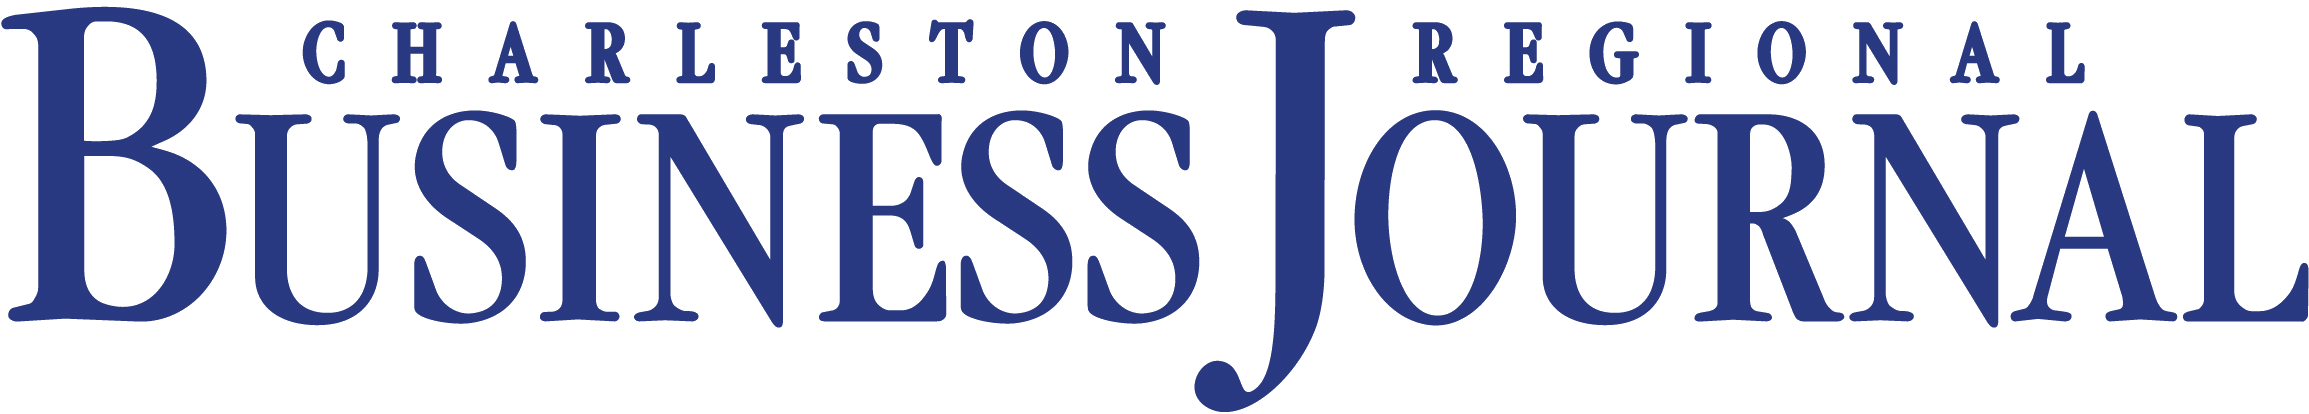 Charleston Regional Business Journal Logo